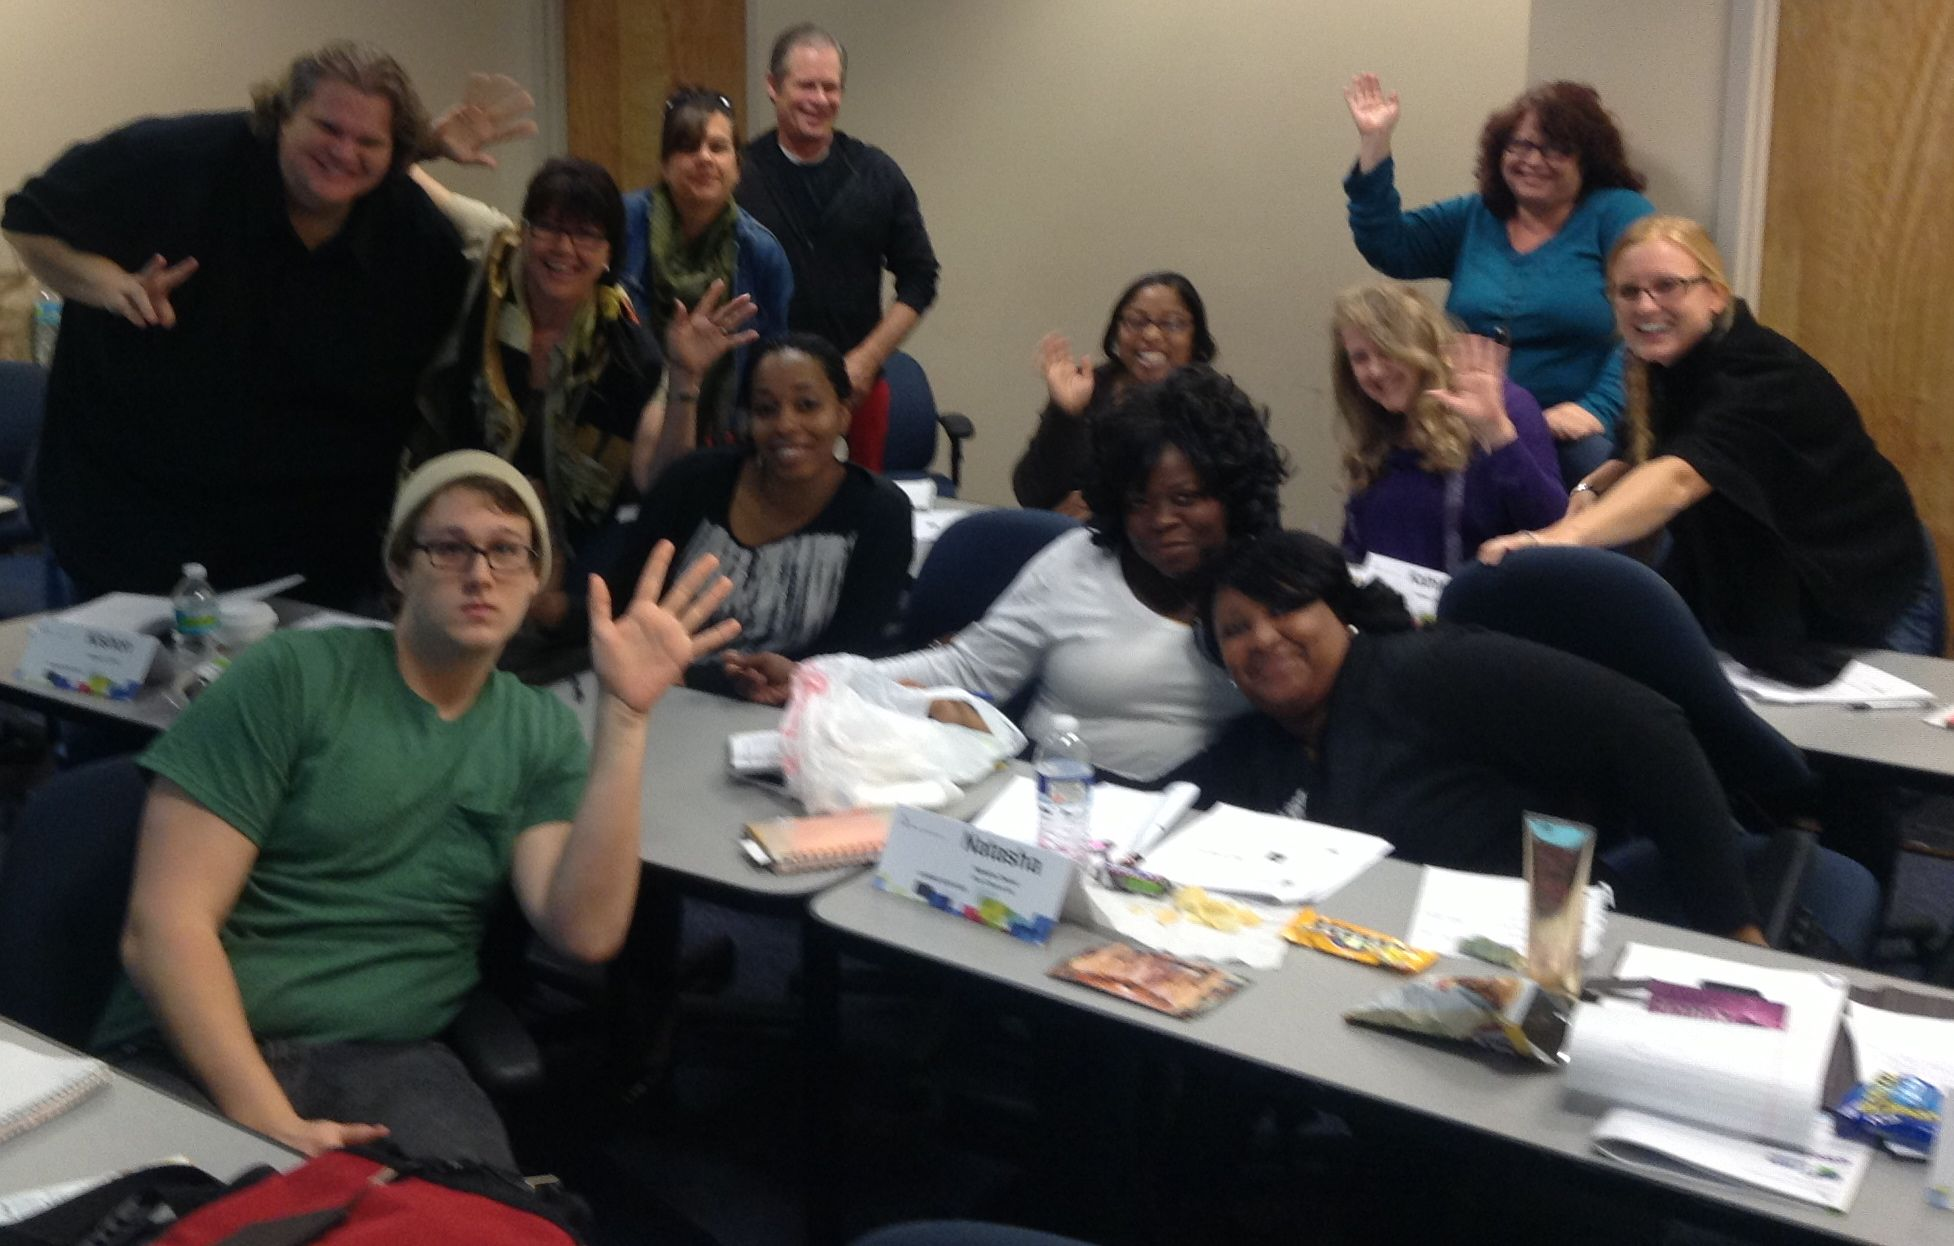 Crash Course in Screenwriting Students, April 2013